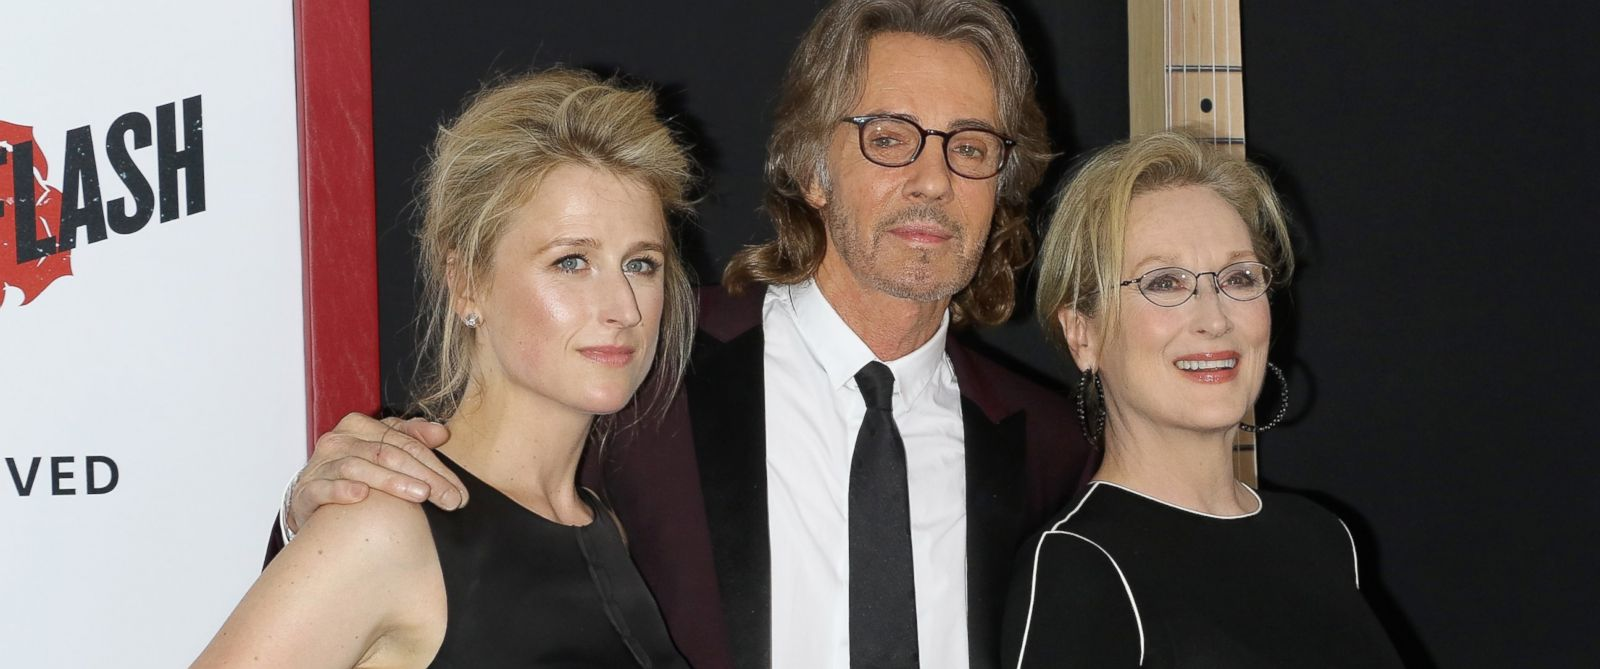 Meryl Streep's Doppelganger Daughter, Mamie Gummer, Talks ...